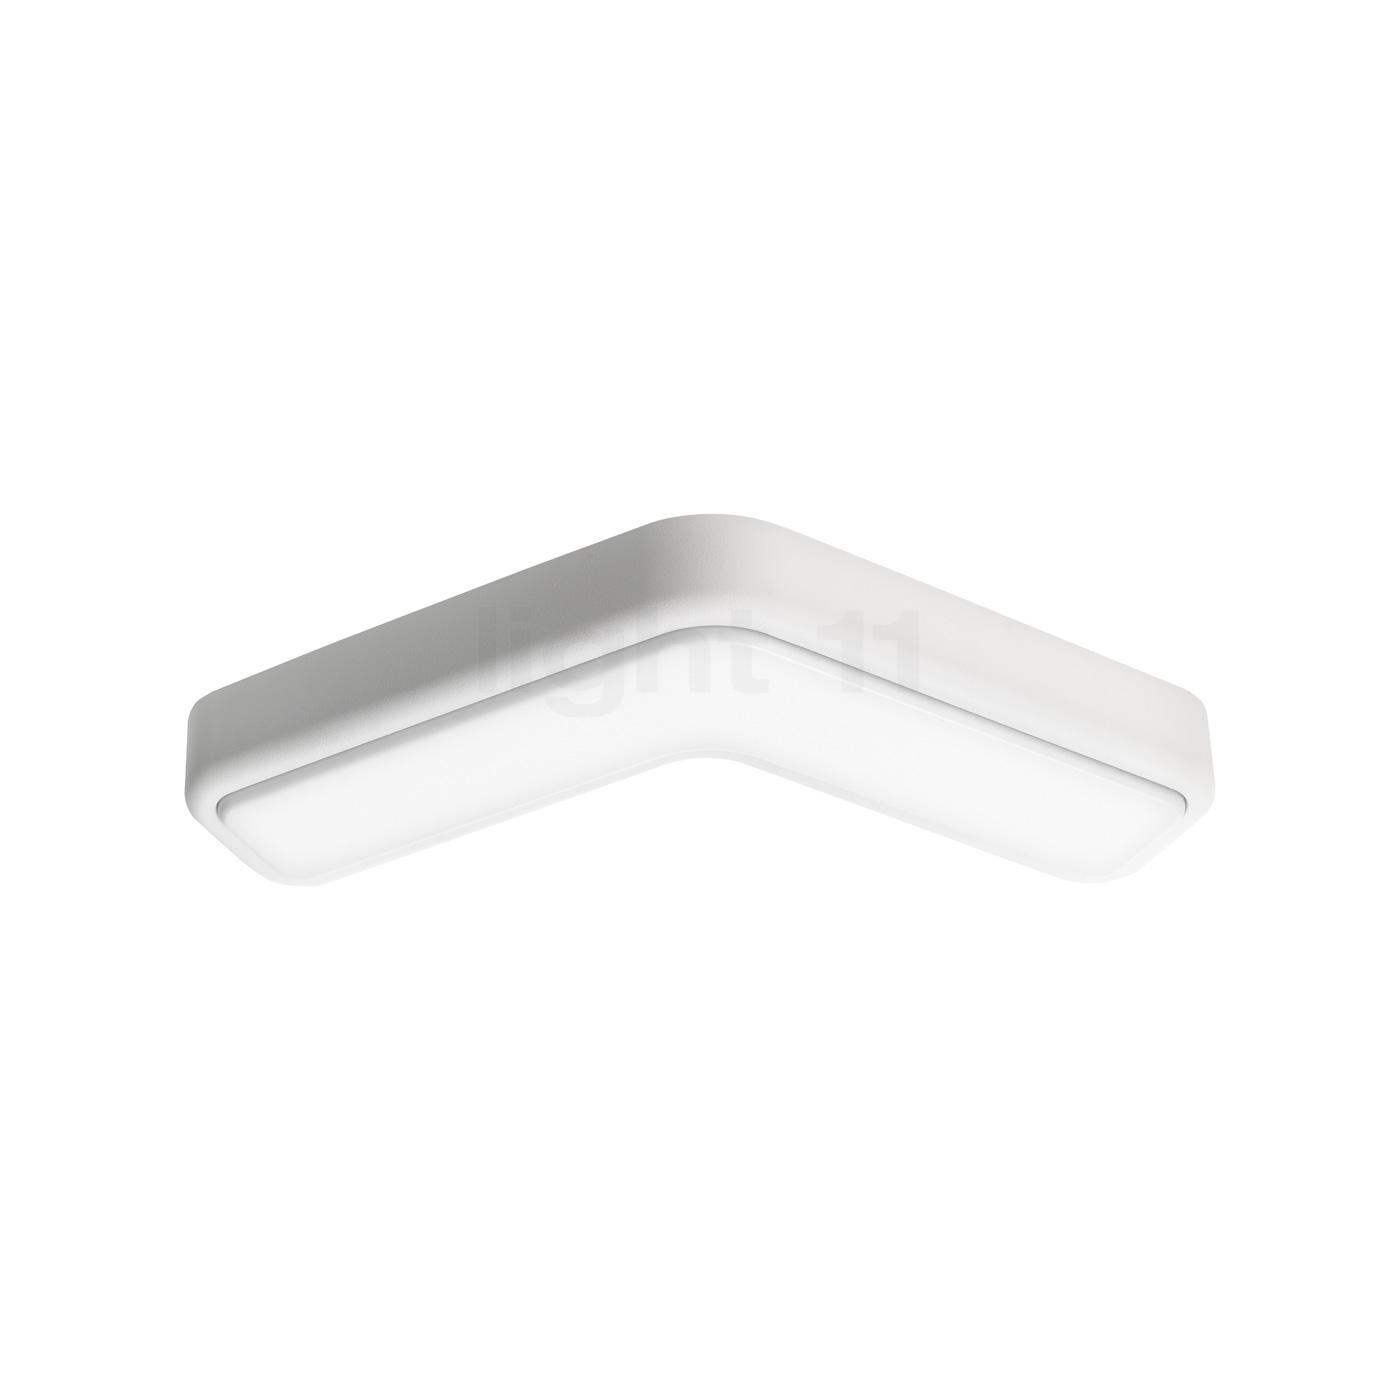 philips ecomoods ceiling light photo - 3